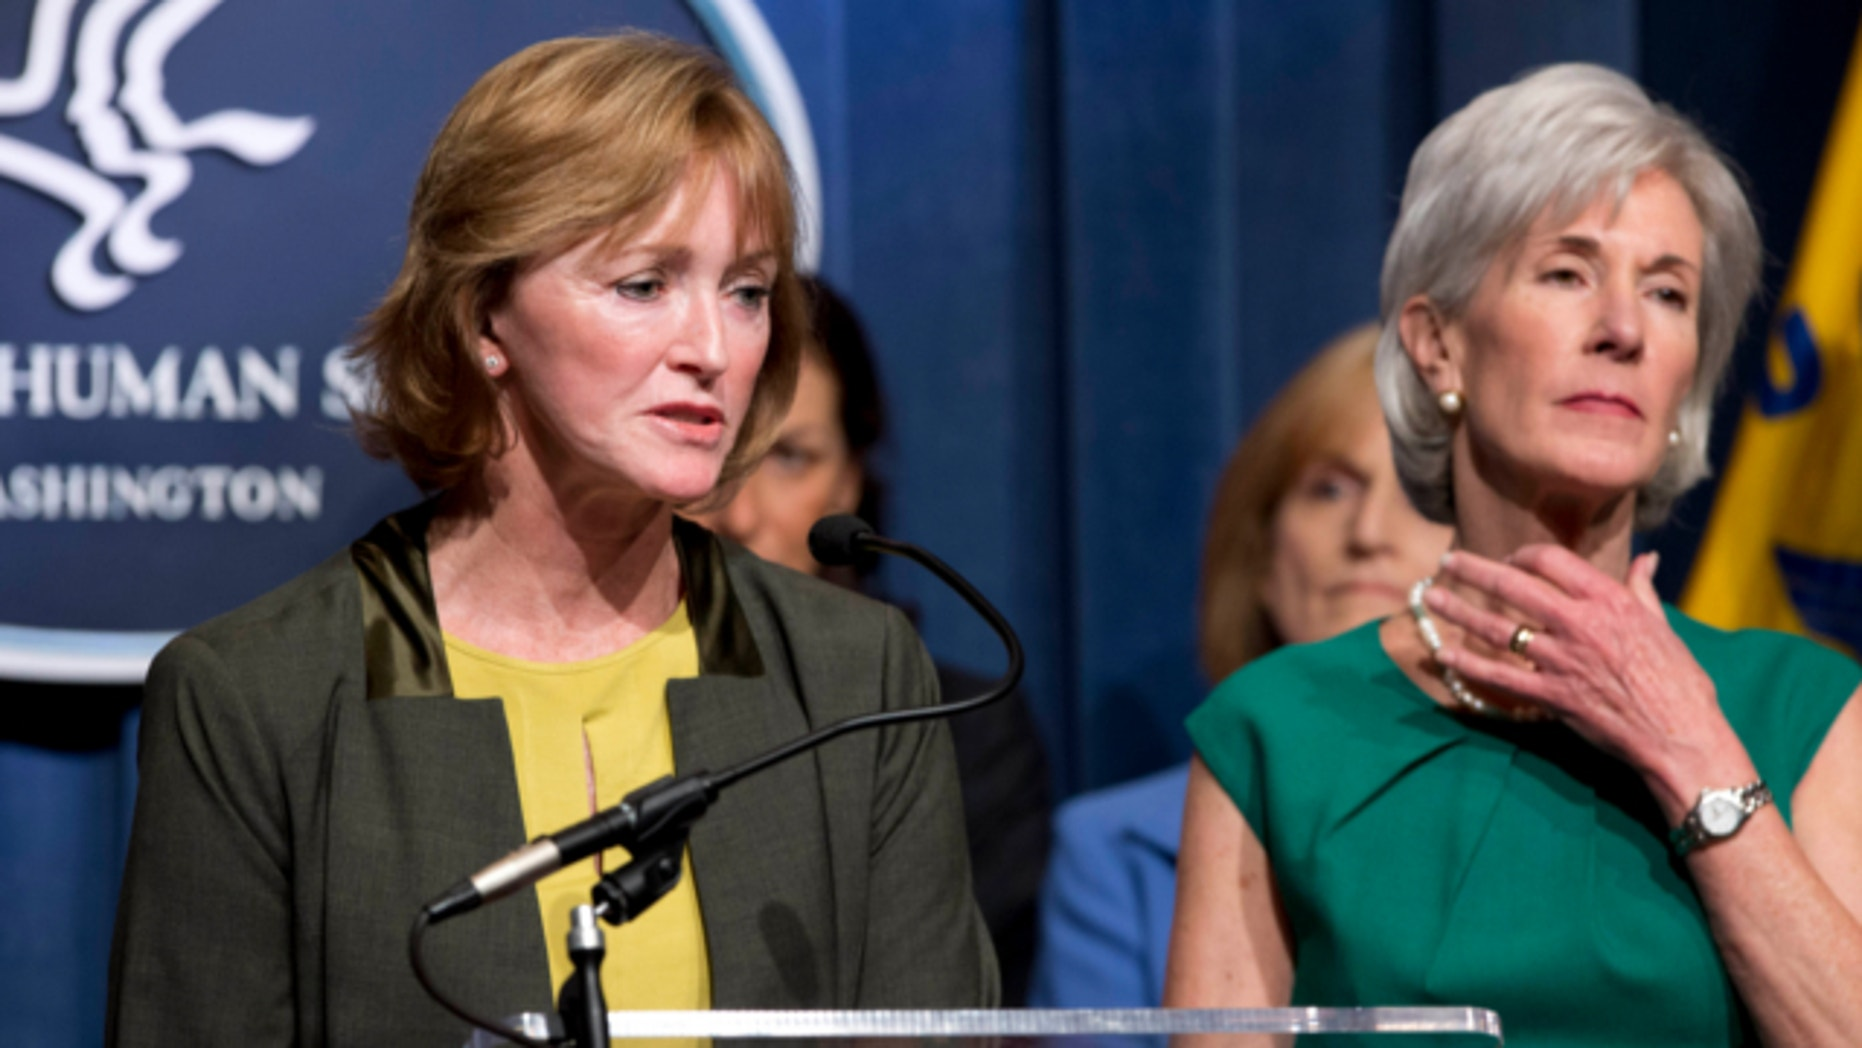 April 10, 2013: Centers for Medicare and Medicaid Services Acting Administrator Marilyn Tavenner, left, accompanied by Health and Human Services Secretary Kathleen Sebelius, speaks during a news conference at the Health and Humans Services (HHS) Department in Washington.